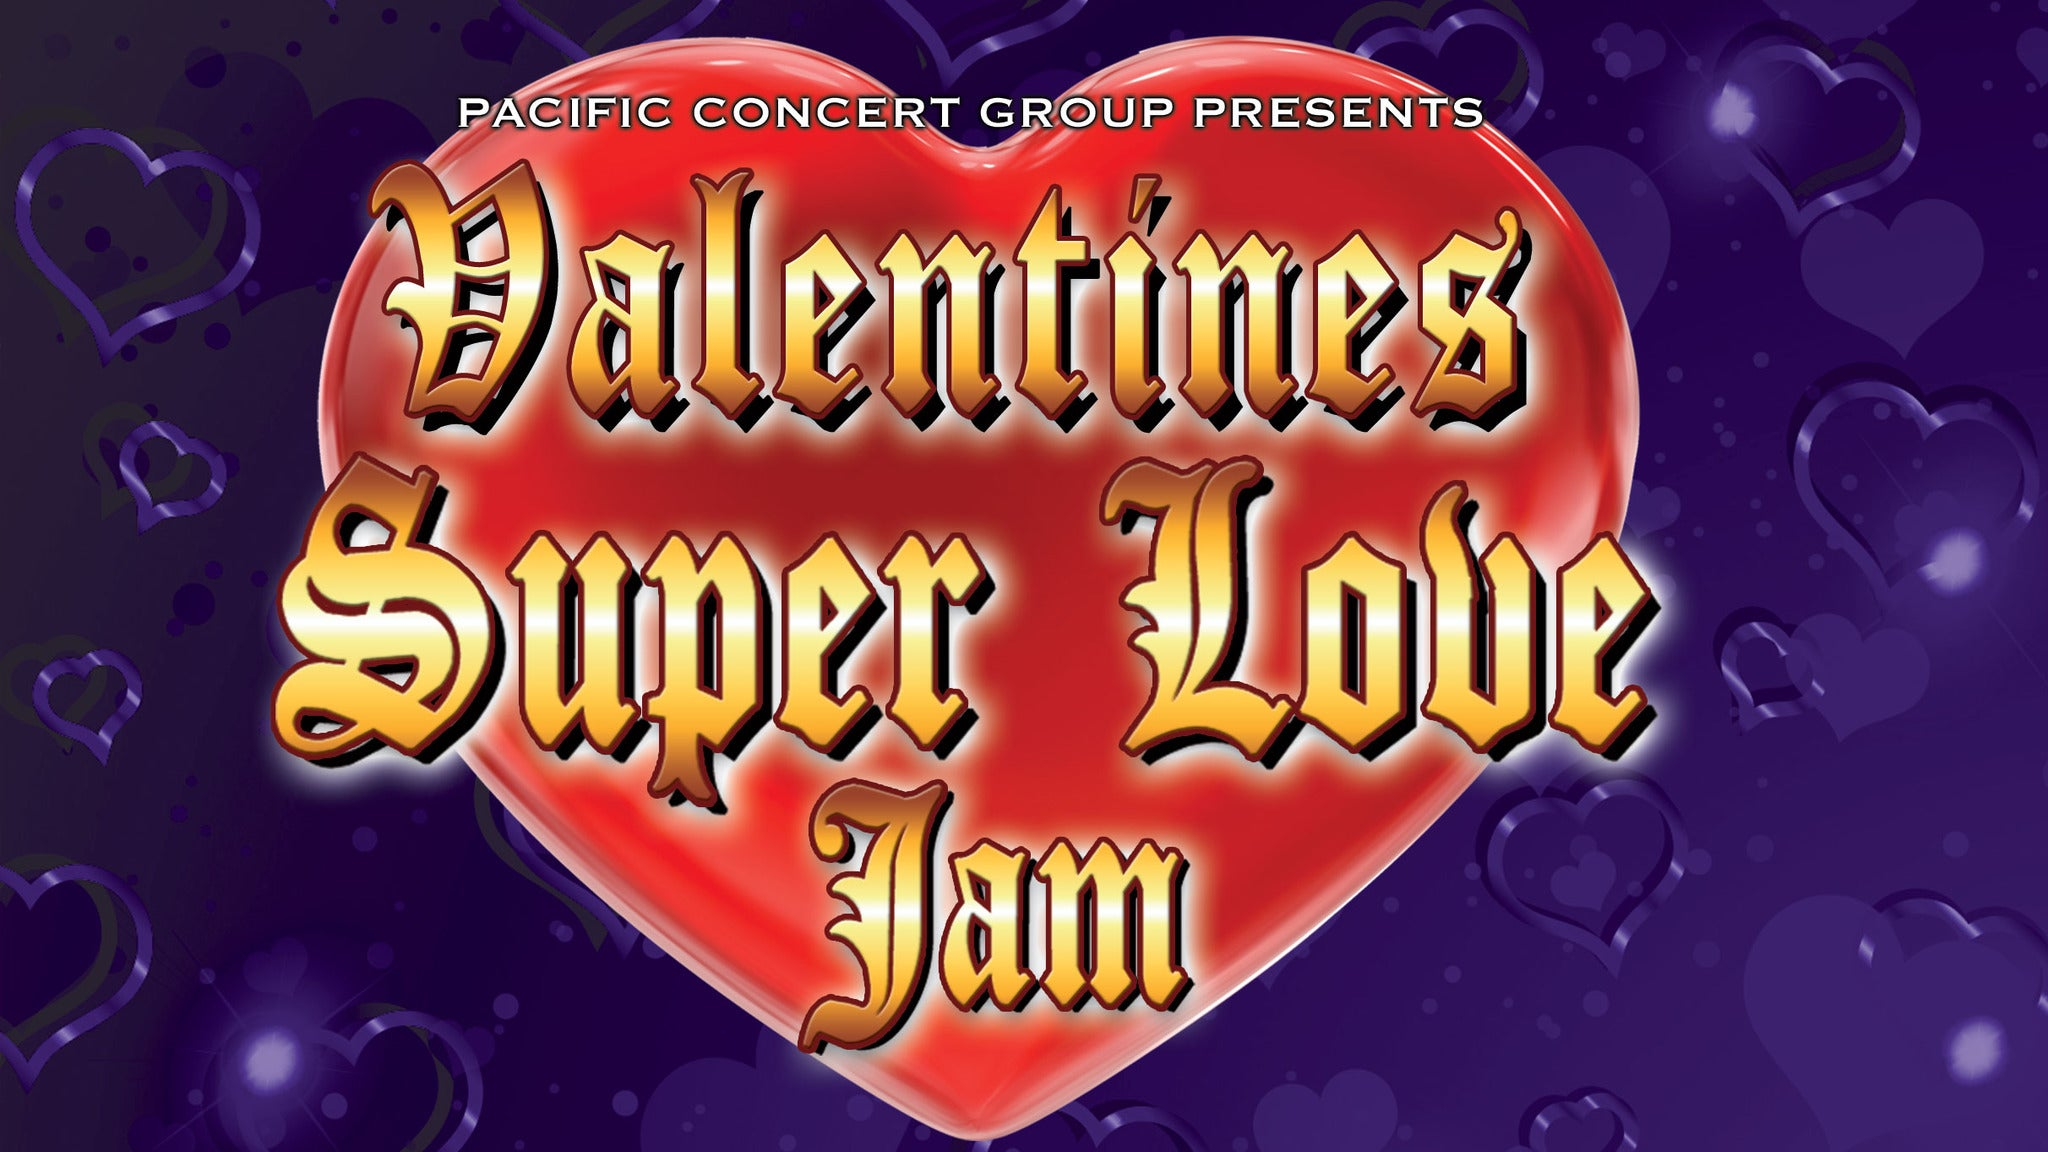 Valentines Super Love Jam at Talking Stick Resort Arena - Phoenix, AZ 85004